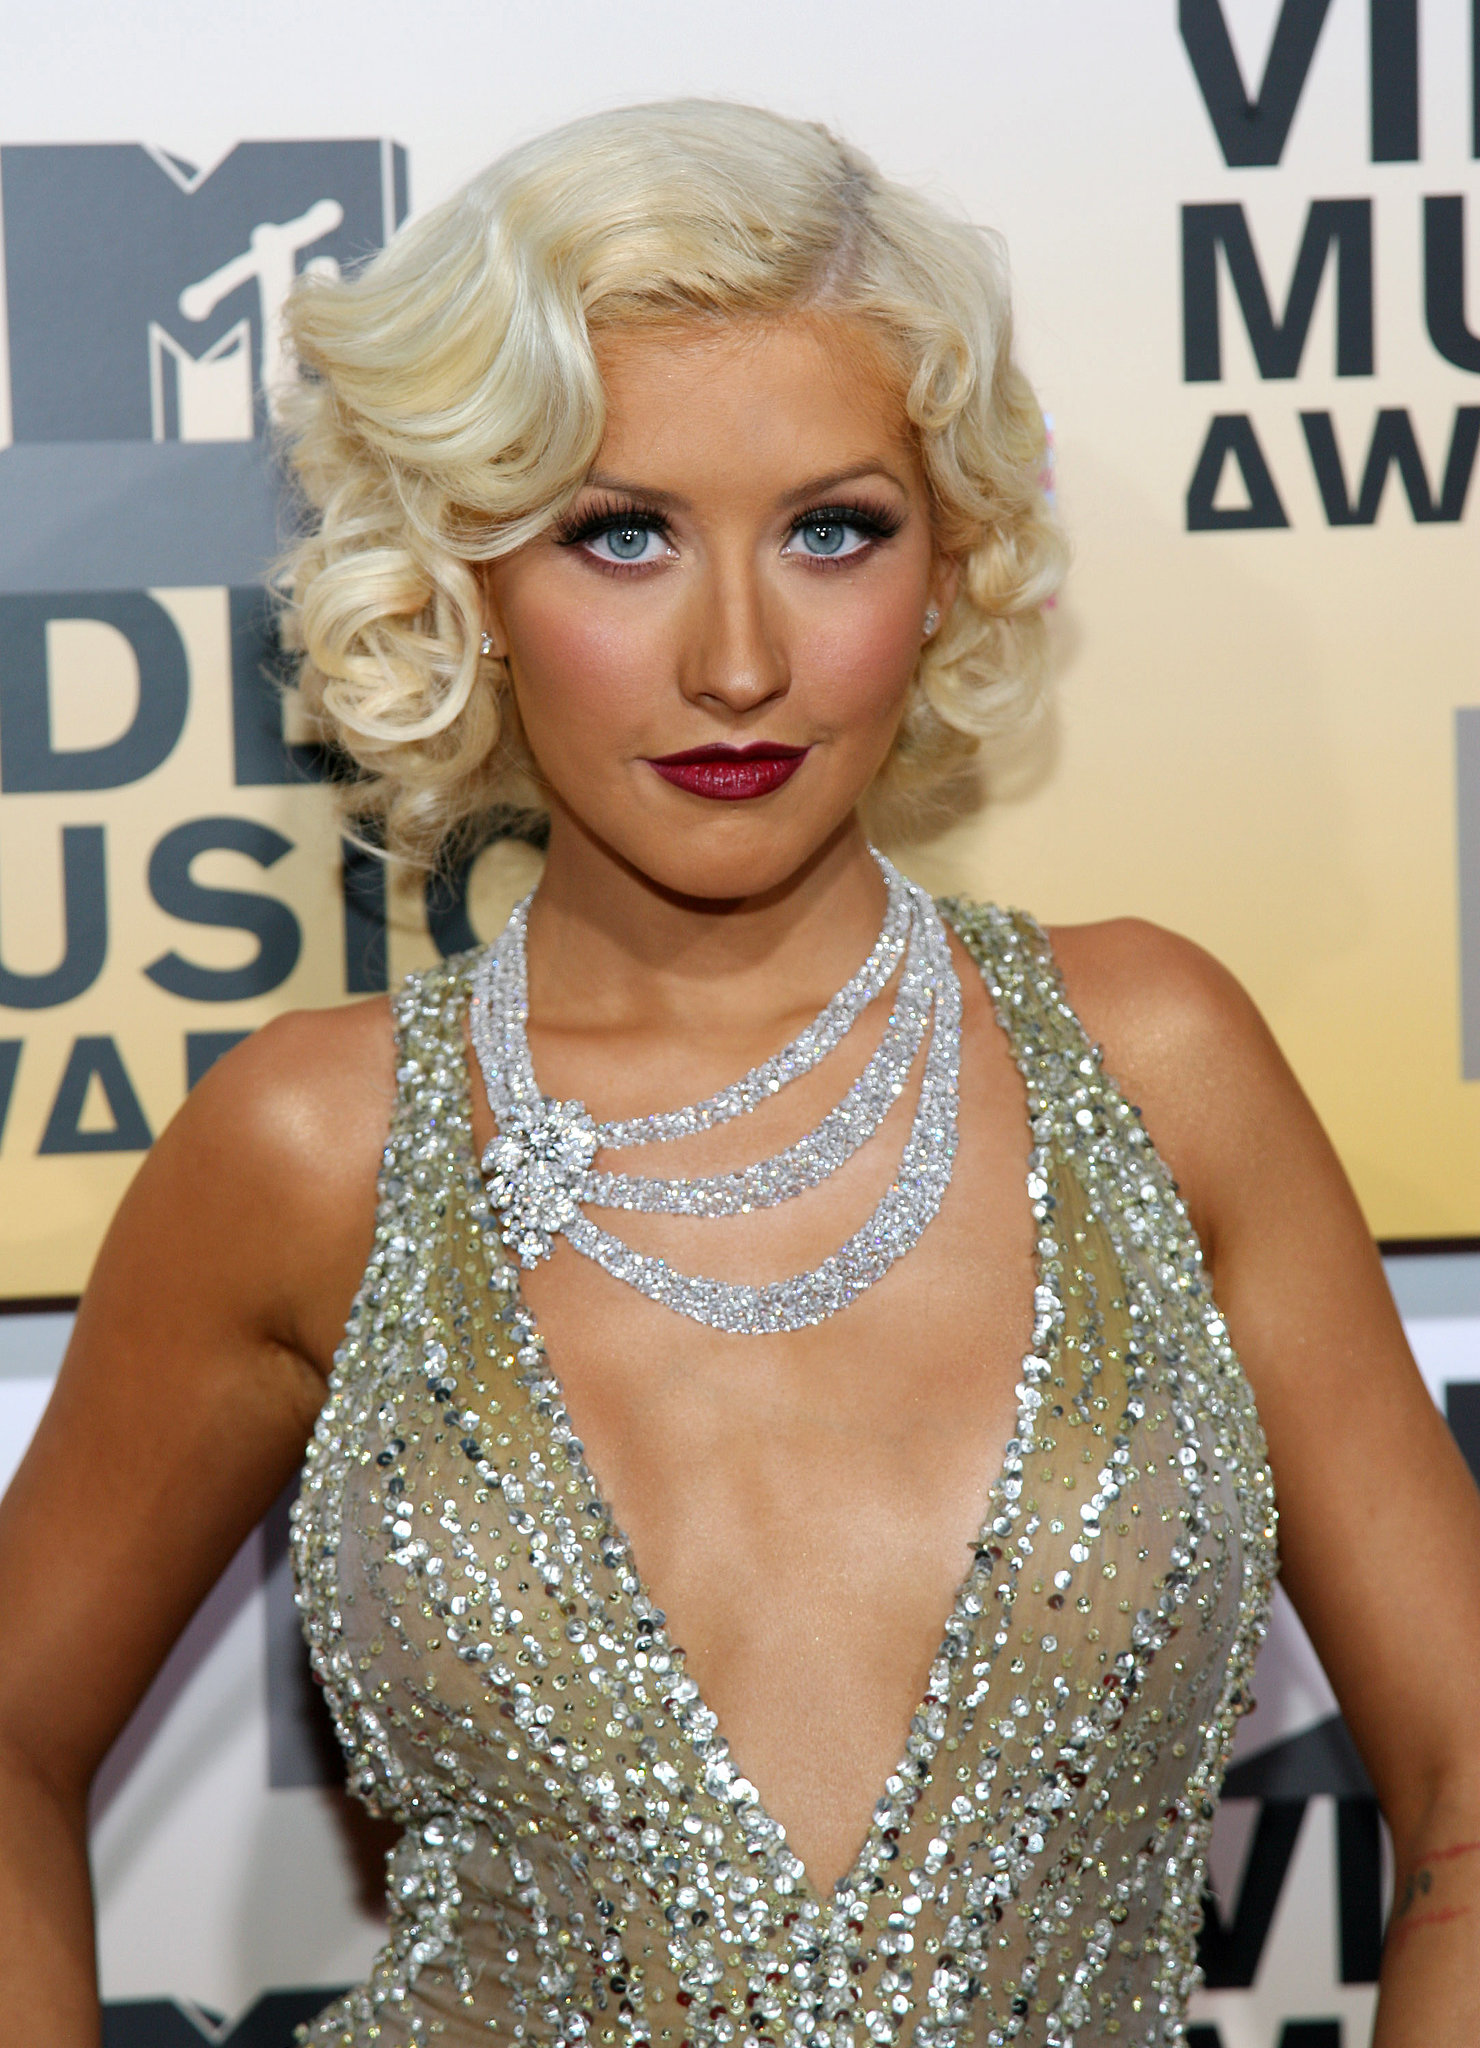 Christina Aguilera 2006 #TBT: Gagas Steak Hat Mileys - 1920S Black Hairstyles